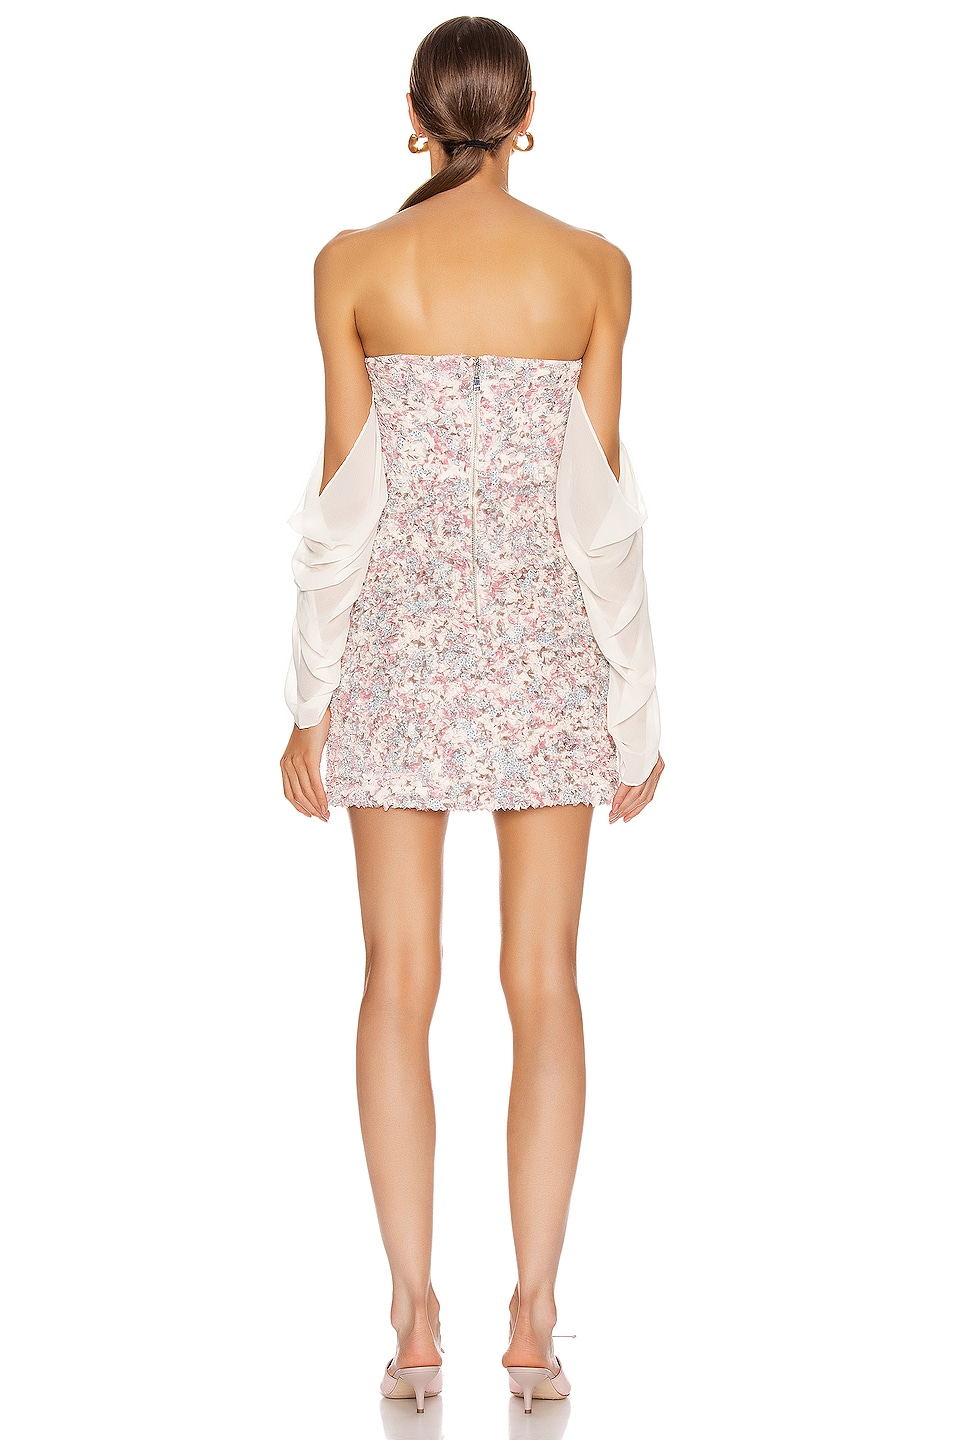 Image 3 of Atoir Chasing Highs Dress in Orchid Floral